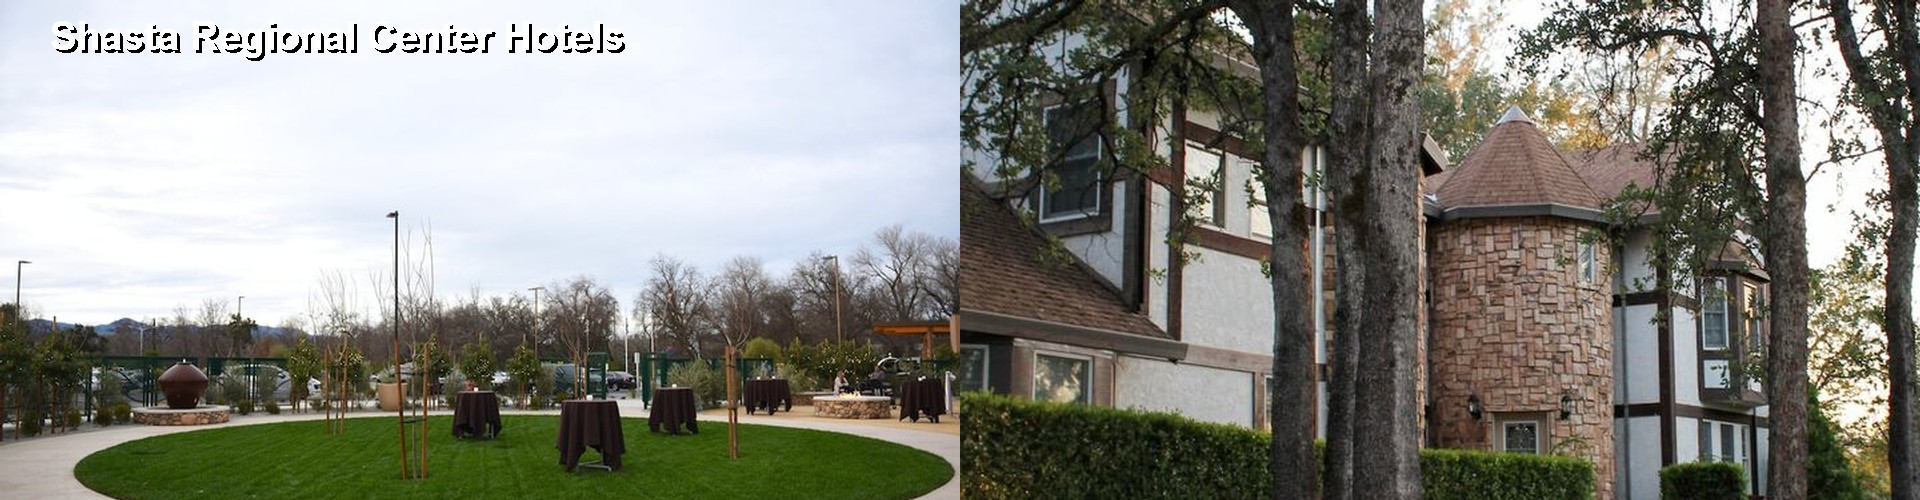 5 Best Hotels near Shasta Regional Center